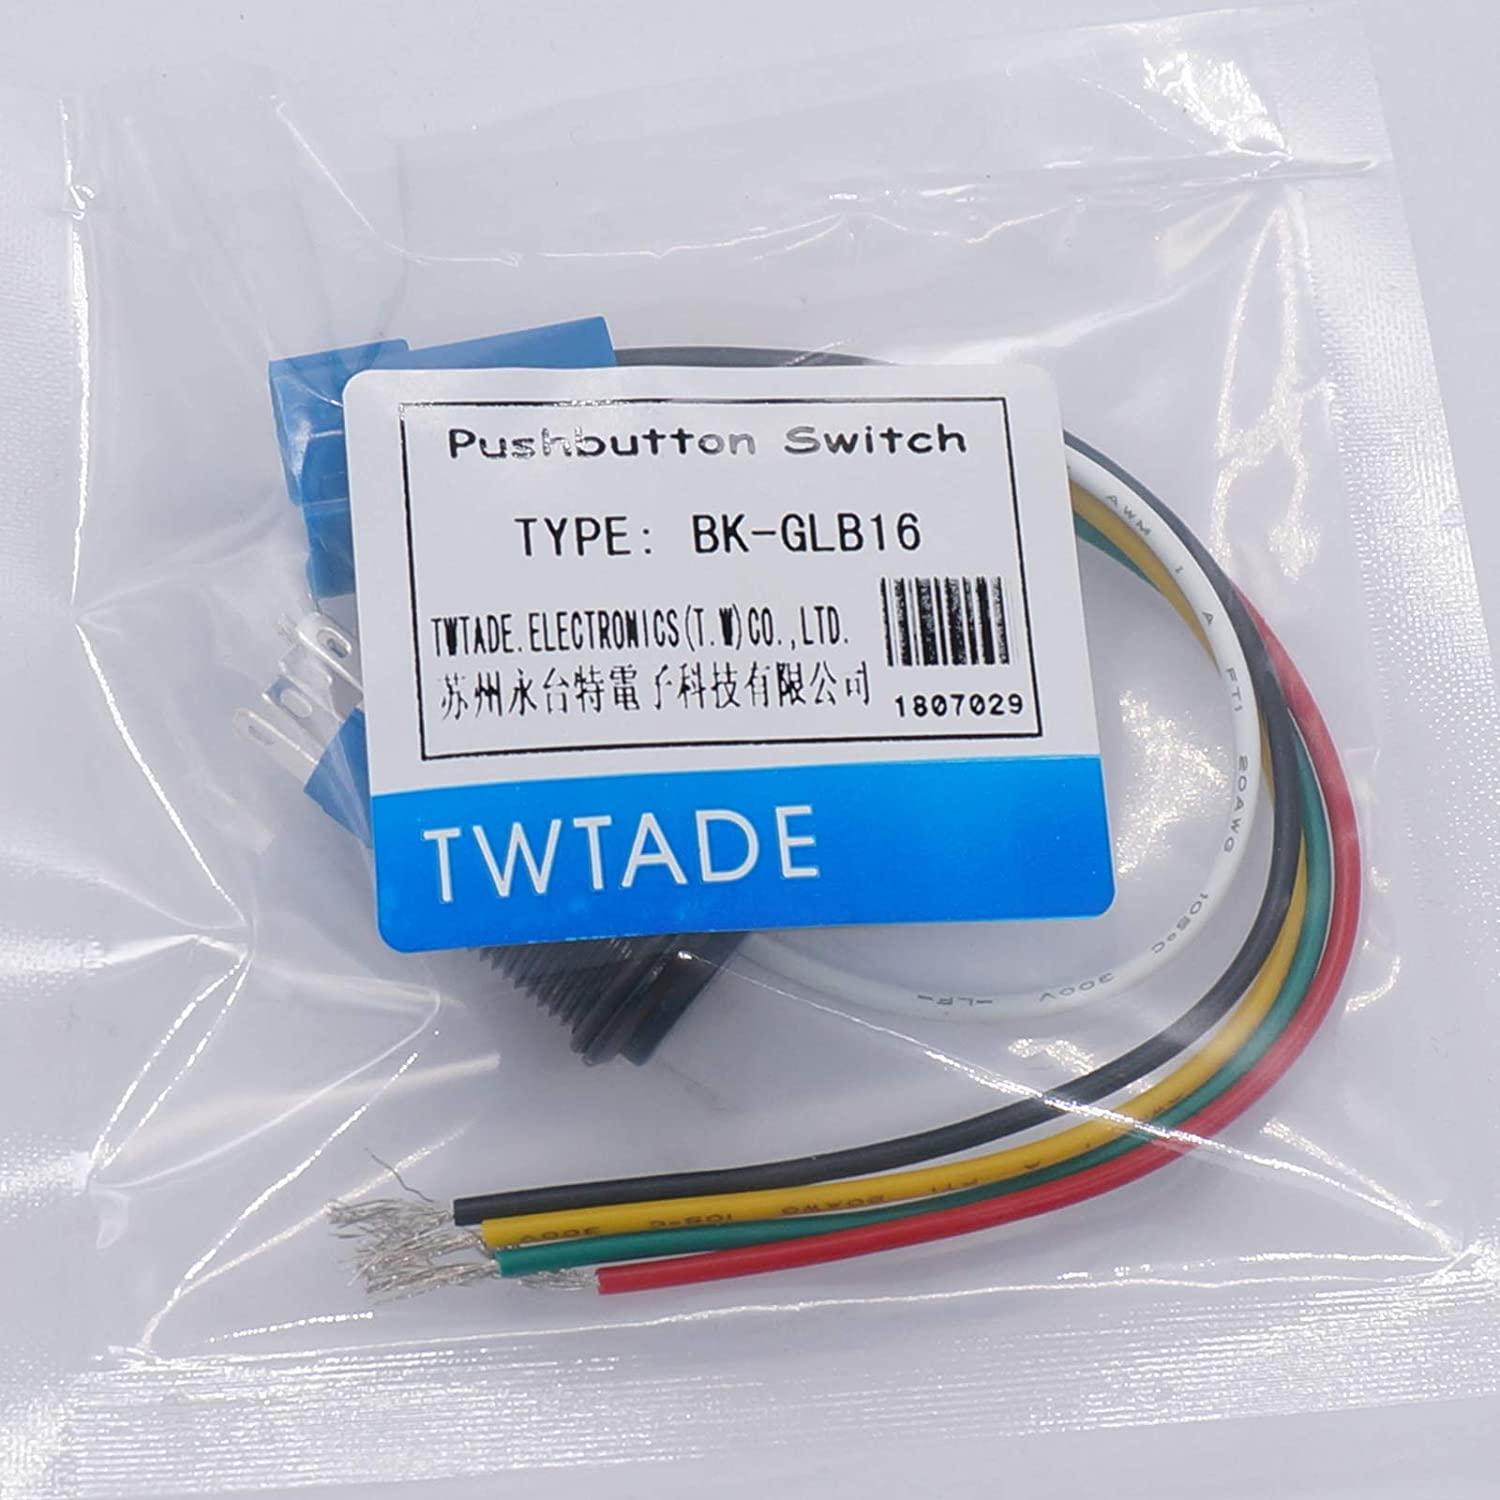 TWTADE//16MM 12V Car Horn Button Blue LED lighted Momentary Metal Speaker Air Horn Toggle Switch with wires BK-GLB19-BU